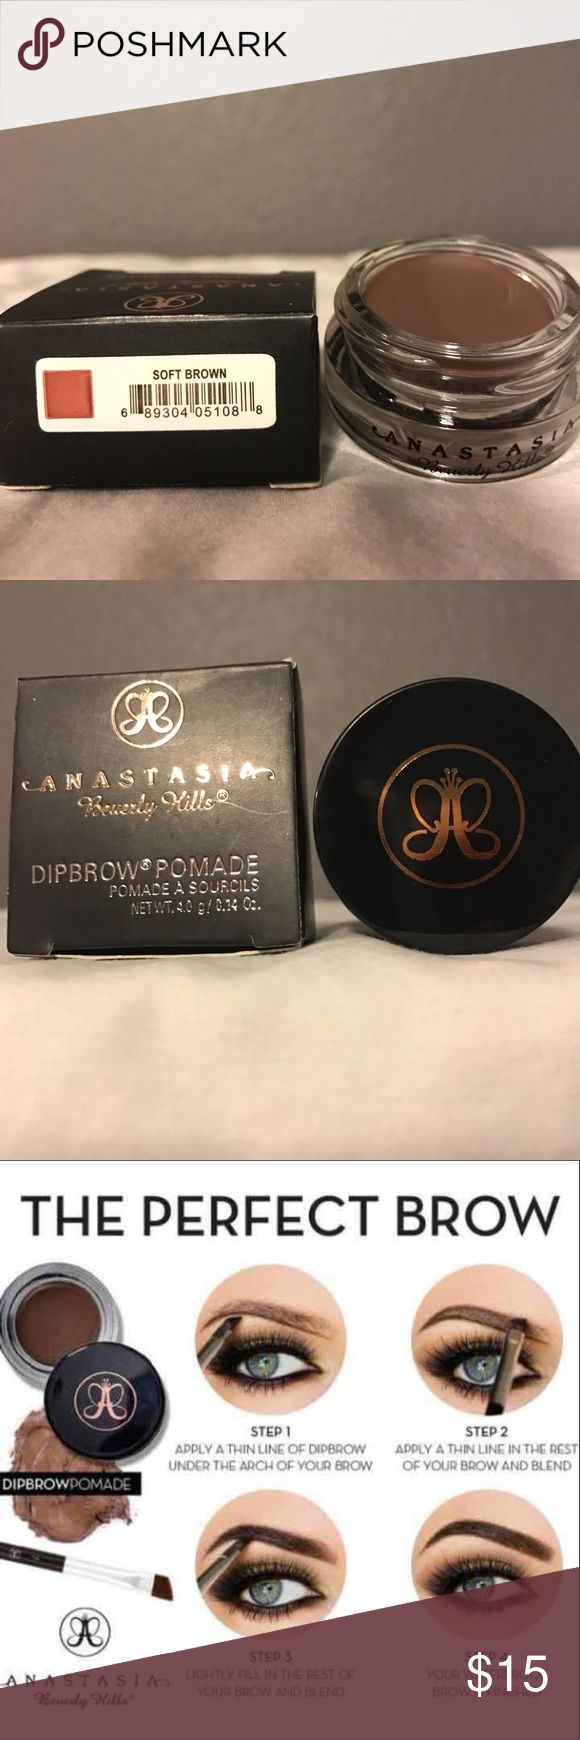 Anastasia BH DIPBROW Pomade Eyebrow SOFT BROWN Anastasia BH DIPBROW Pomade Eyebrow SOFT BROWN   Colors available:  Ebony, Auburn, Blonde, Taupe, Chocolate, Dark Brown, Medium Brown and Soft Brown. Anastasia Beverly Hills Makeup